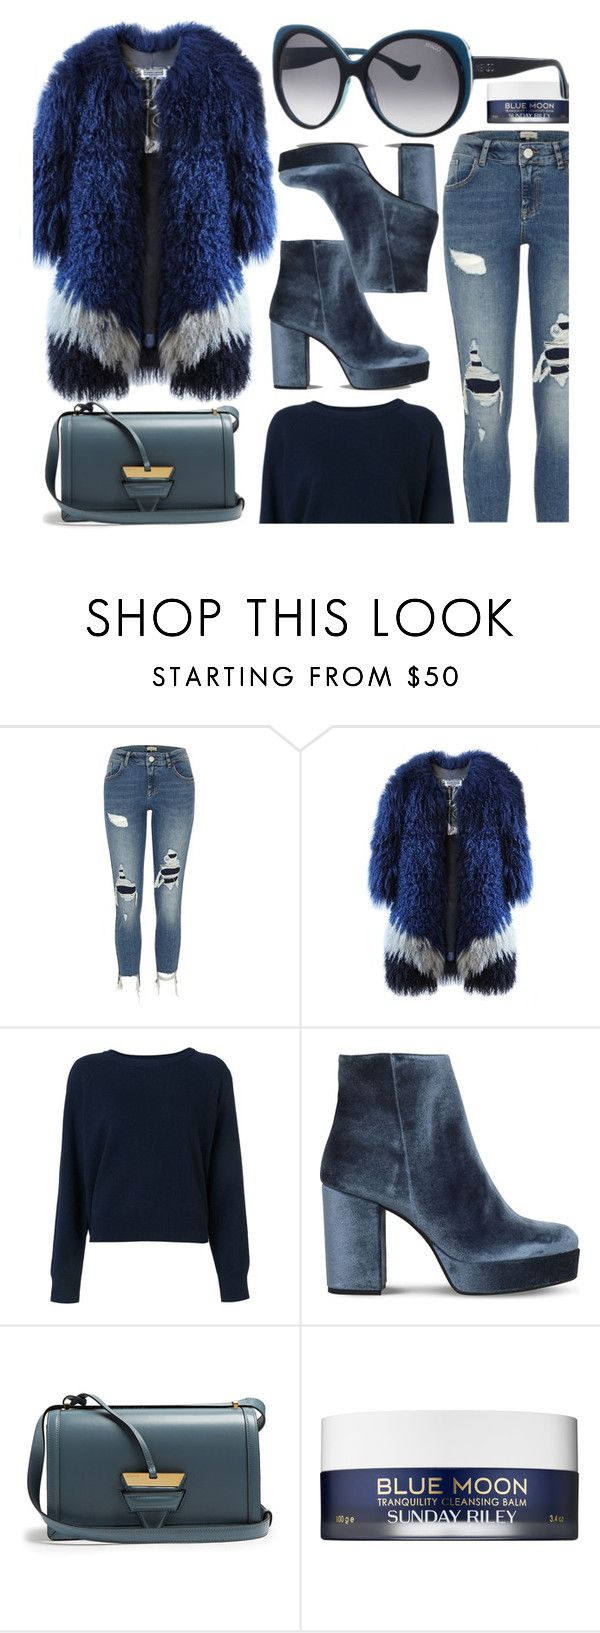 """""""Over The Top"""" by smartbuyglasses ❤ liked on Polyvore featuring River Island, T By Alexander Wang, Carvela, Loewe, Sunday Riley, Kenzo and Blue"""